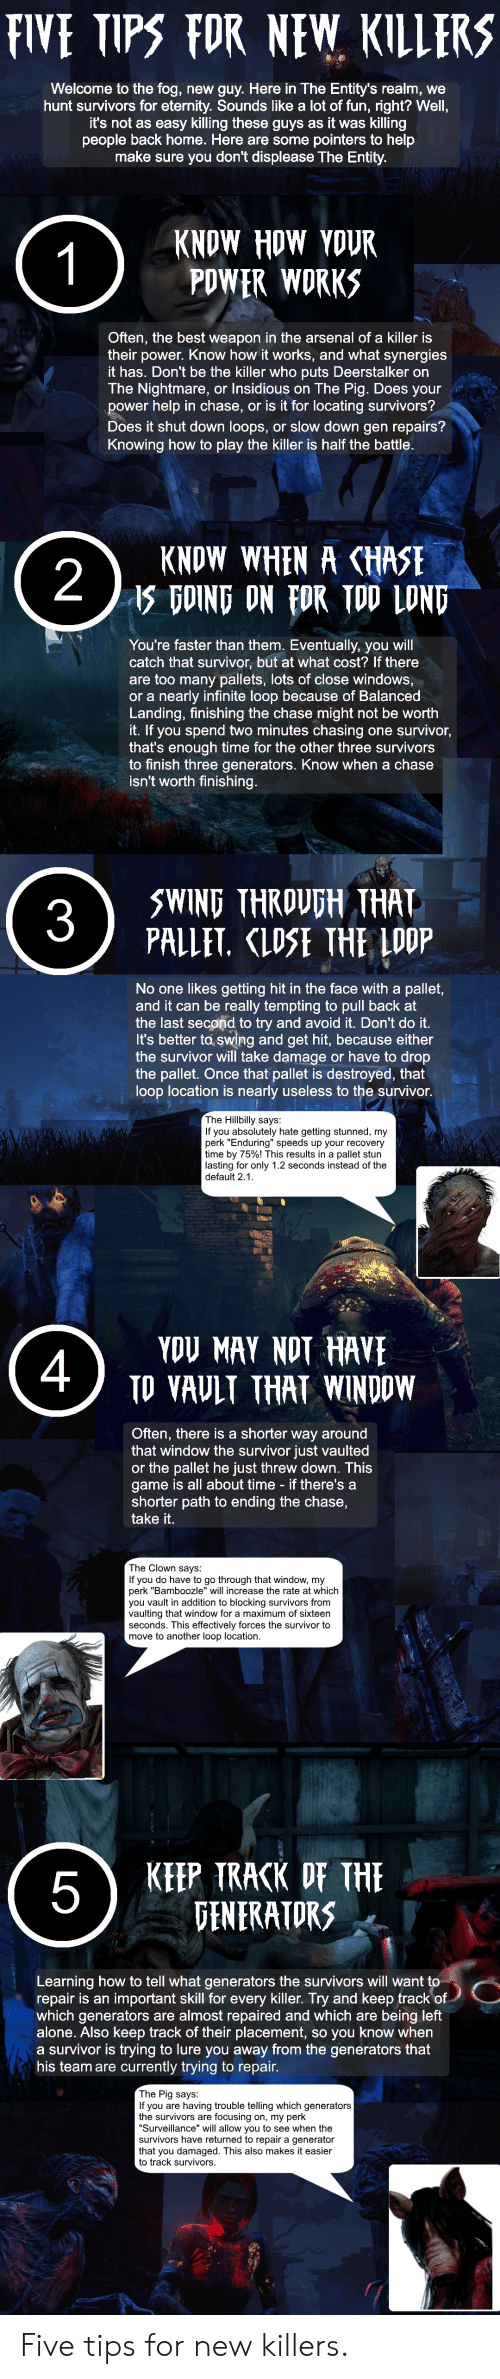 """Being Alone, Arsenal, and Windows: FIVE TIPS FOR NEW KILlERS  Welcome to the fog, new guy. Here in The Entity's realm, we  hunt survivors for eternity. Sounds like a lot of fun, right? Wel  it's not as easy killing these guys as it was killing  people back home. Here are some pointers to help  make sure you don't displease The Entity  KNOW HOW YOUR  PDWER WORKS  Often, the best weapon in the arsenal of a killer is  their power. Know how it works, and what synergies  it has. Don't be the killer who puts Deerstalker on  The Nightmare, or Insidious on The Pig. Does your  power help in chase, or is it for locating survivors?  Does it shut down loops, or slow down gen repairs?  Knowing how to play the killer is half the battle  KNOW WHEN A CHASE  GOING ON FOR IOD LOND  2  You're faster than them. Eventually, you will  catch that survivor, but at what cost? If there  are too many pallets, lots of close windows  or a nearly infinite loop because of Balanced  Landing, finishing the chase might not be worth  it. If you spend two minutes chasing one survivor  that's enough time for the other three survivors  to finish three generators. Know when a chase  isn't worth finishing  5WING THRDUFH THAT  PALLET, LSE THE LOOP  No one likes getting hit in the face with a pallet,  and it can be really tempting to pull back at  the last second to try and avoid it. Don't do it.  It's better to swing and get hit, because either  the survivor will take damage or have to drop  the pallet. Once that pallet is destroyed, that  loop location is nearly useless to the survivor  The Hillbilly says:  If you absolutely hate getting stunned, my  perk """"Enduring speeds up your recovery  time by 75%) This results in a pallet stun  lasting for only 1.2 seconds instead of the  default 2.1  YDU MAY NDT HAVE  TO VAULT THAT WINDDW  4  Often, there is a shorter way around  that window the survivor just vaulted  or the pallet he just threw down. This  game is all about time - if there's a  shorter path to endi"""